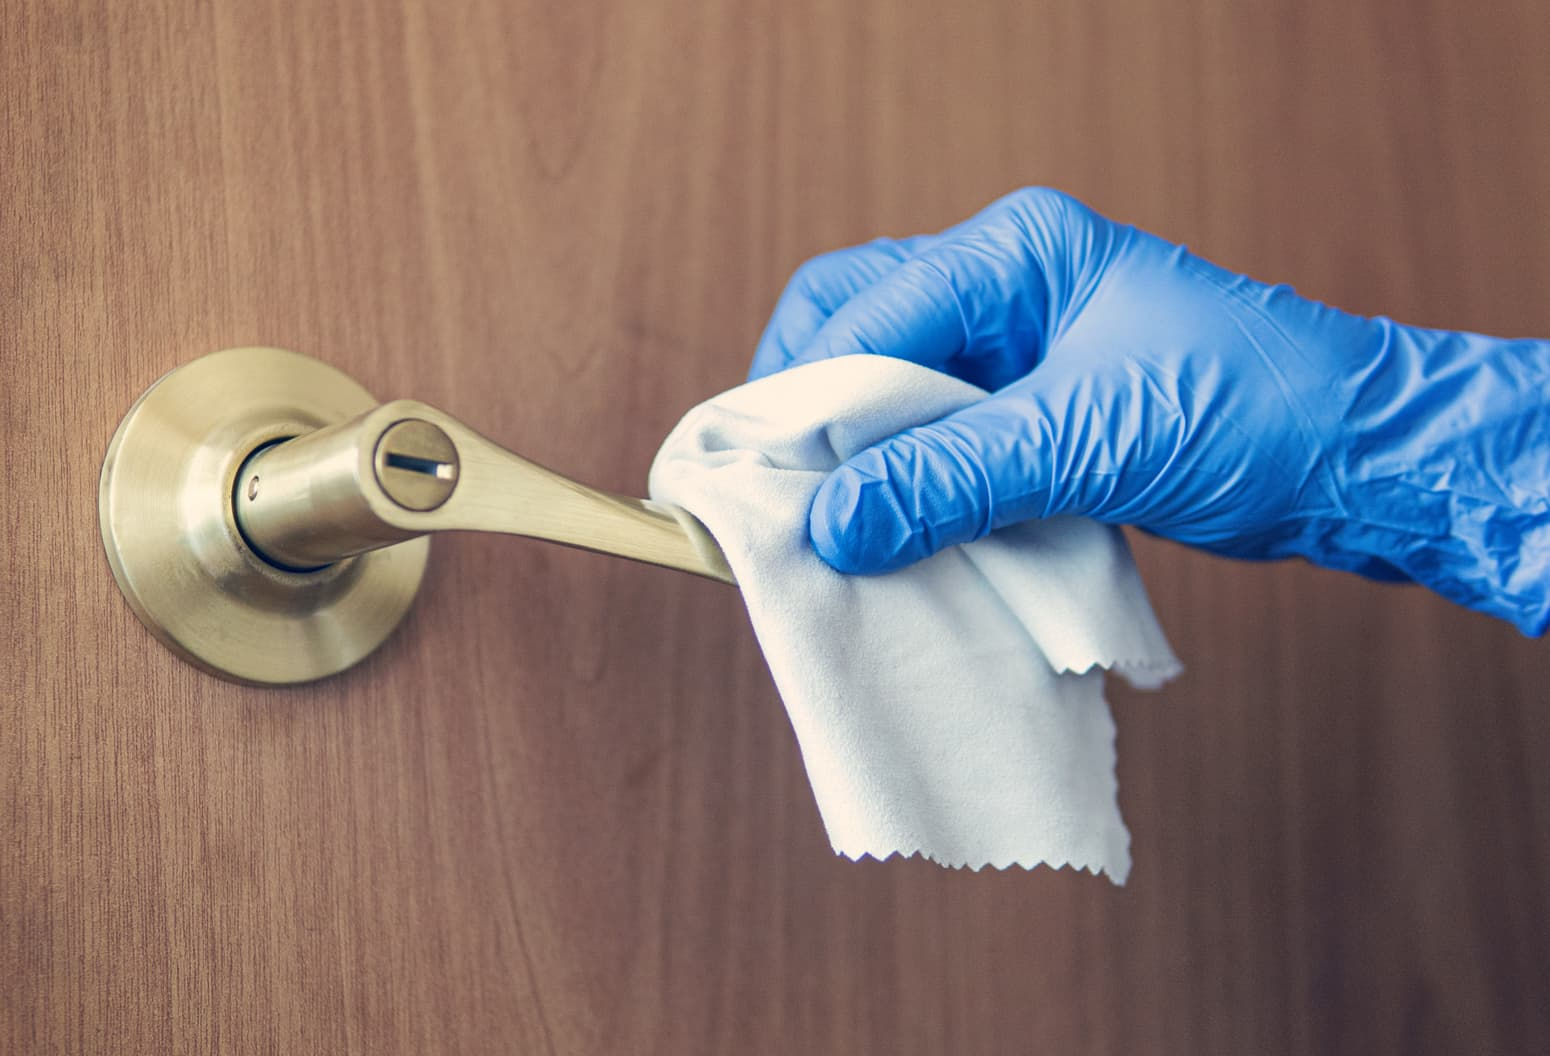 Person wearing gloves disinfecting a door handle